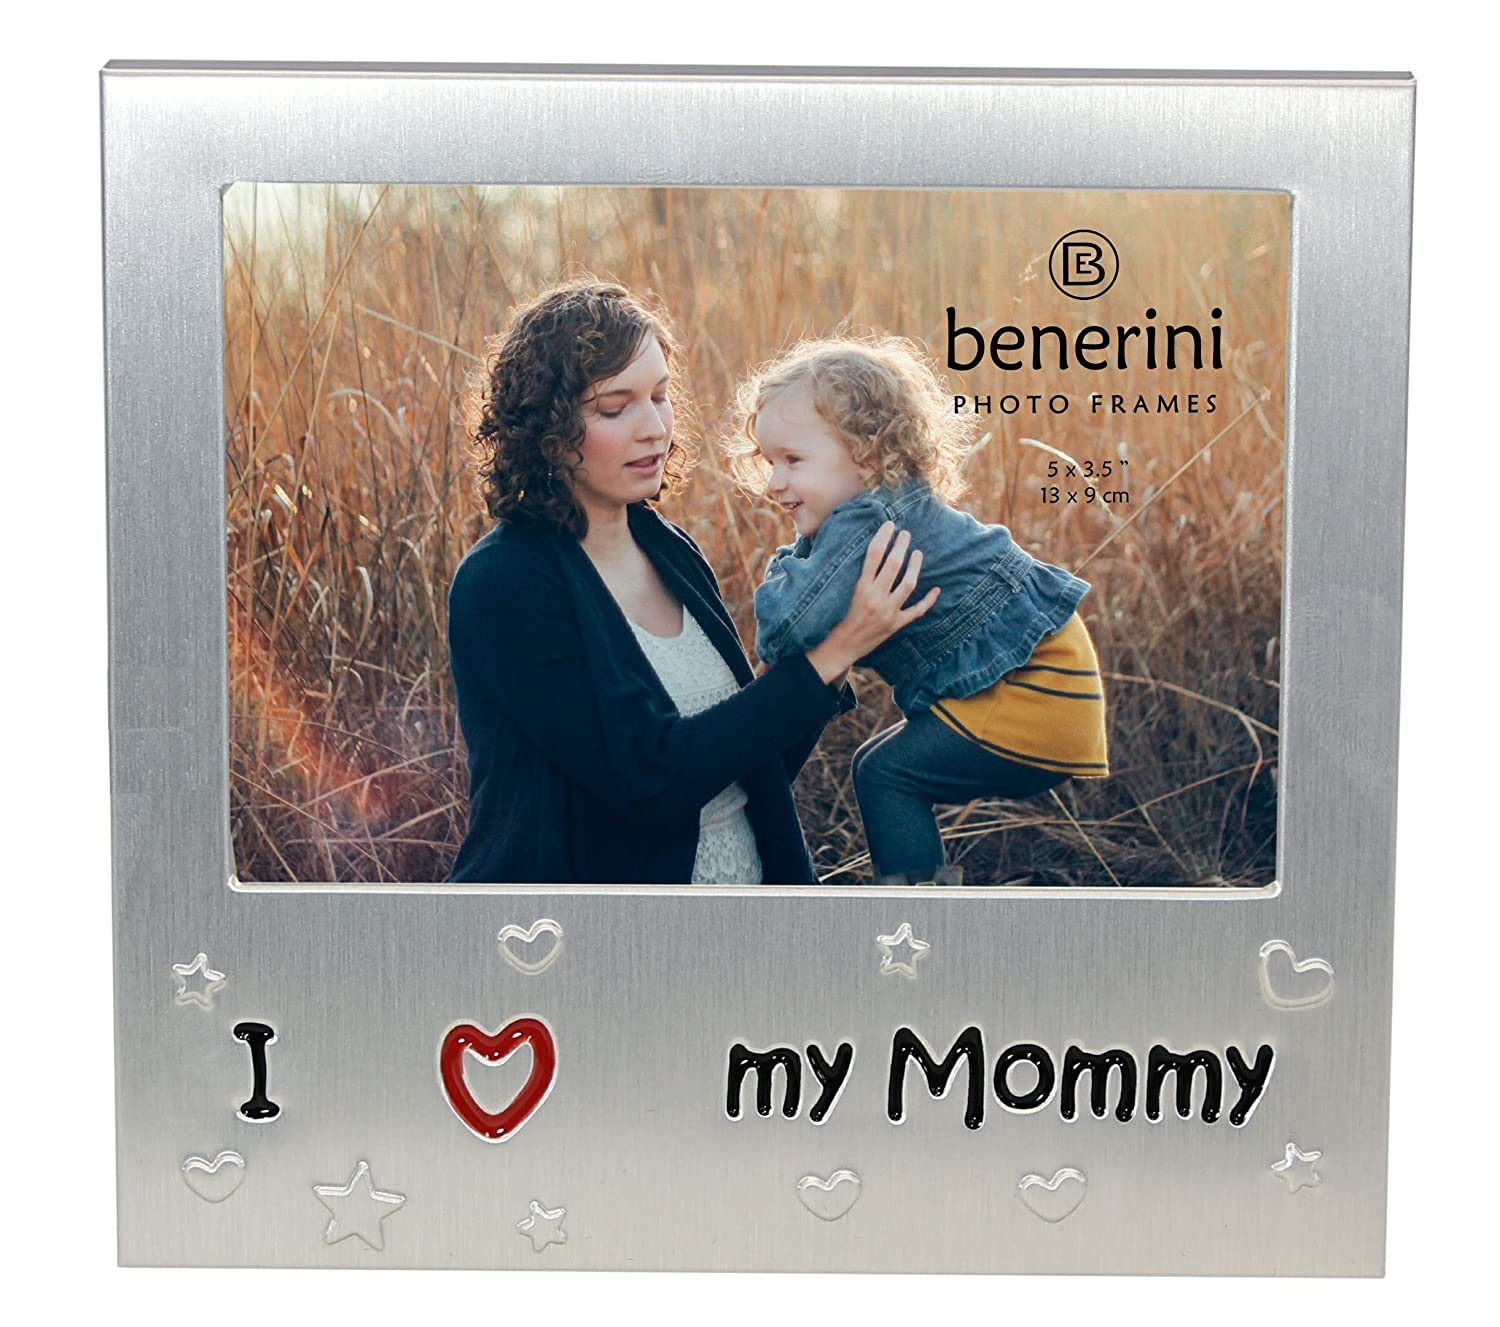 benerini ' I Love My Mommy ' - Photo Picture Frame Gift - 5 x 3.5